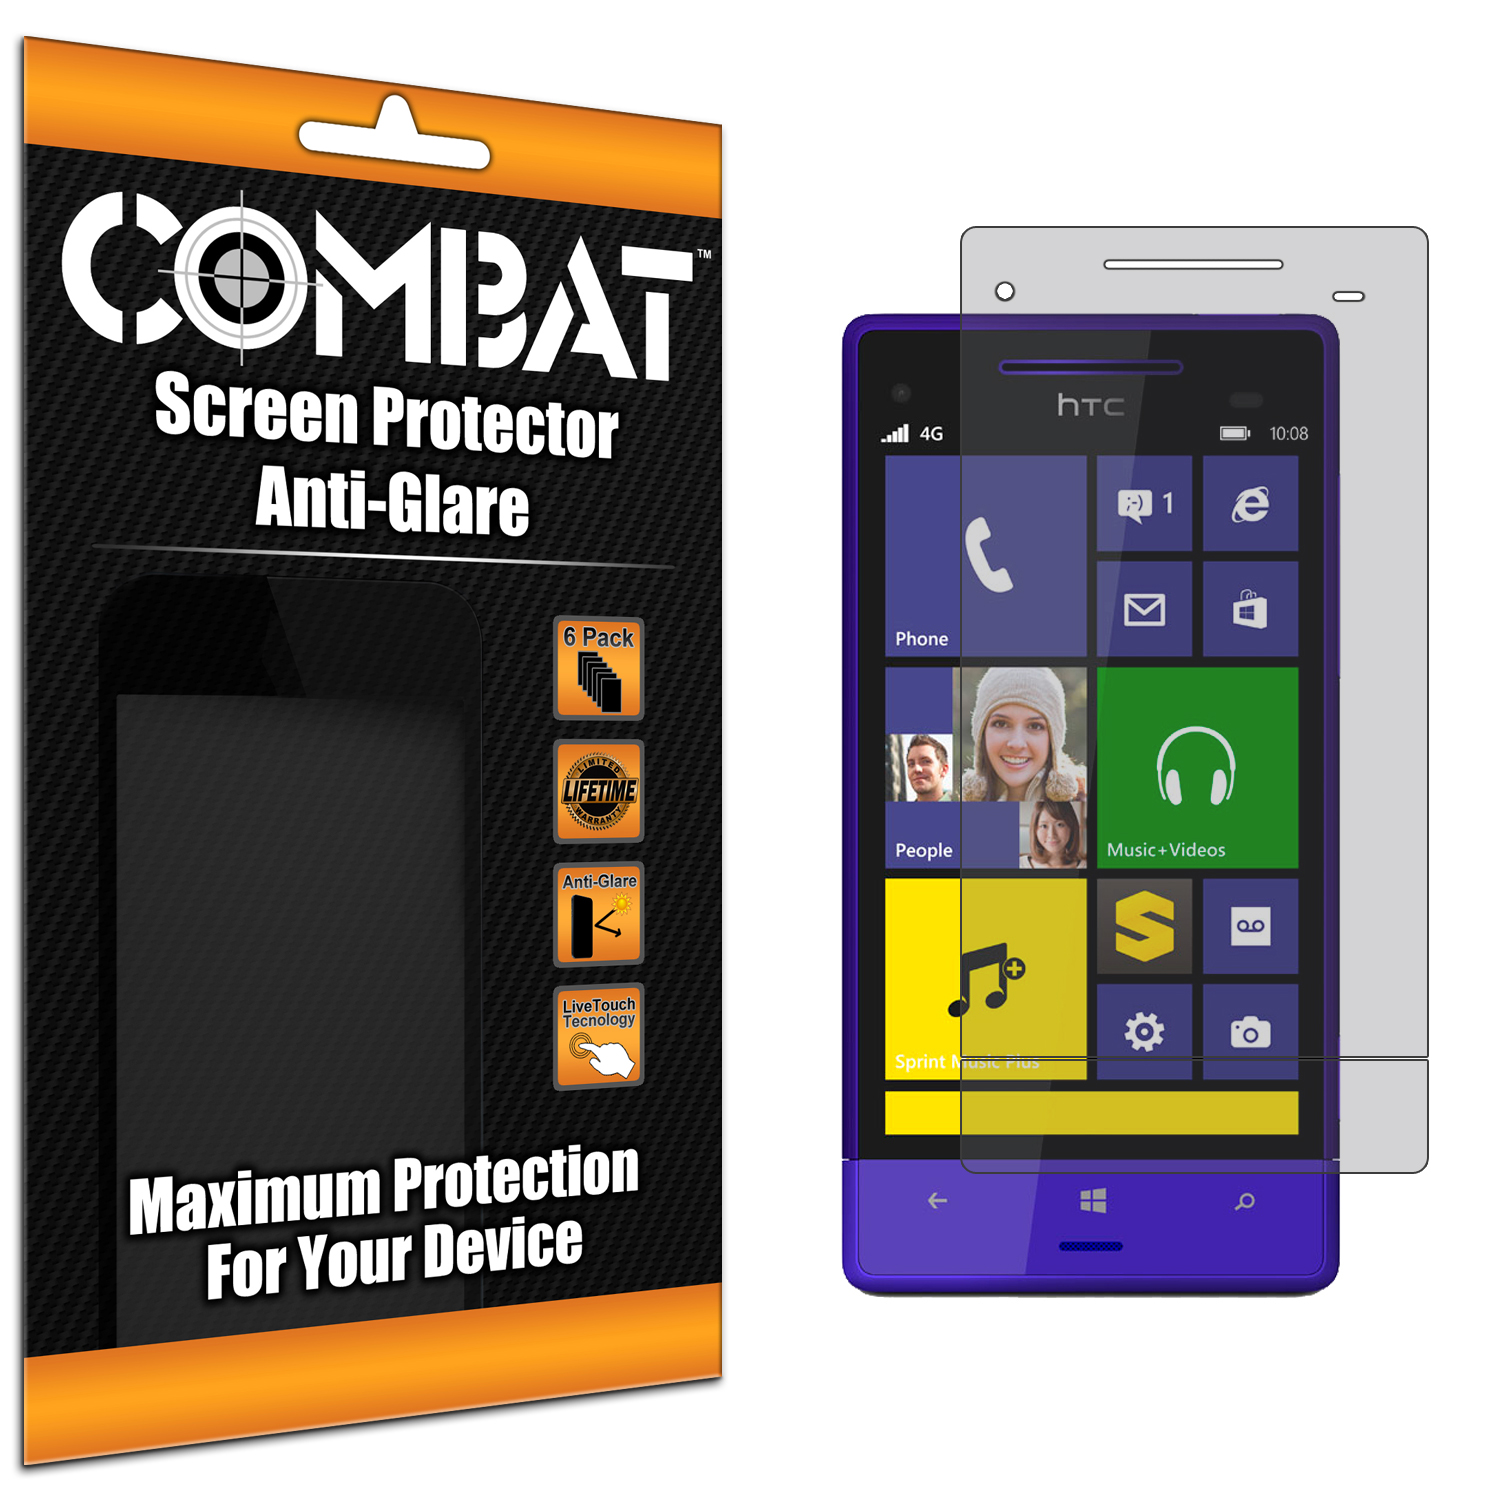 HTC 8XT Combat 6 Pack Anti-Glare Matte Screen Protector